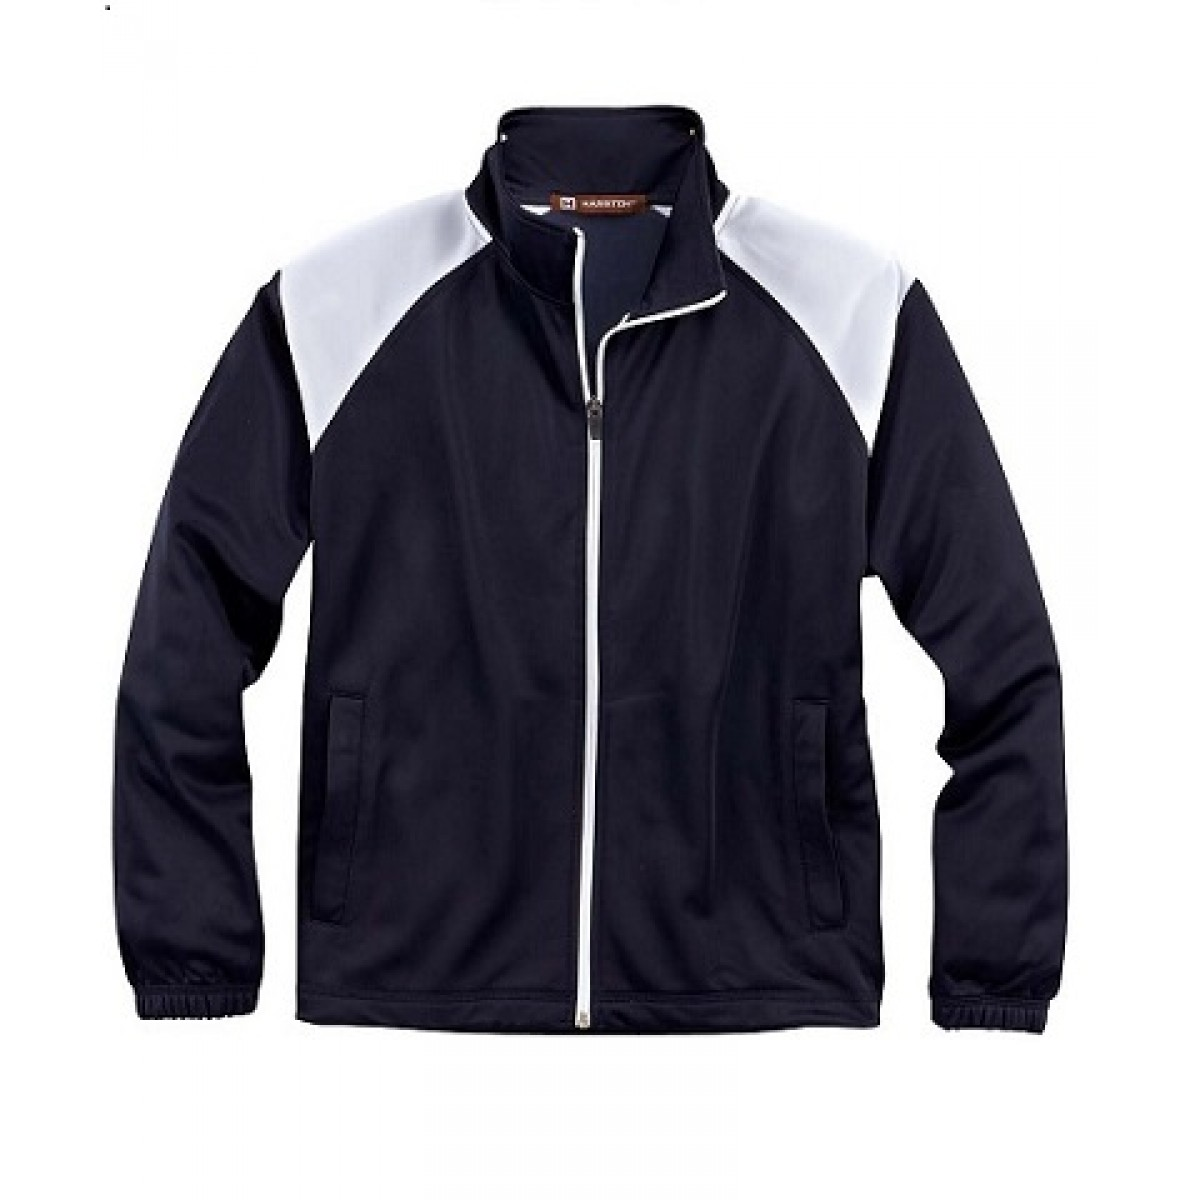 Embroidered Navy Tricot Track Jacket